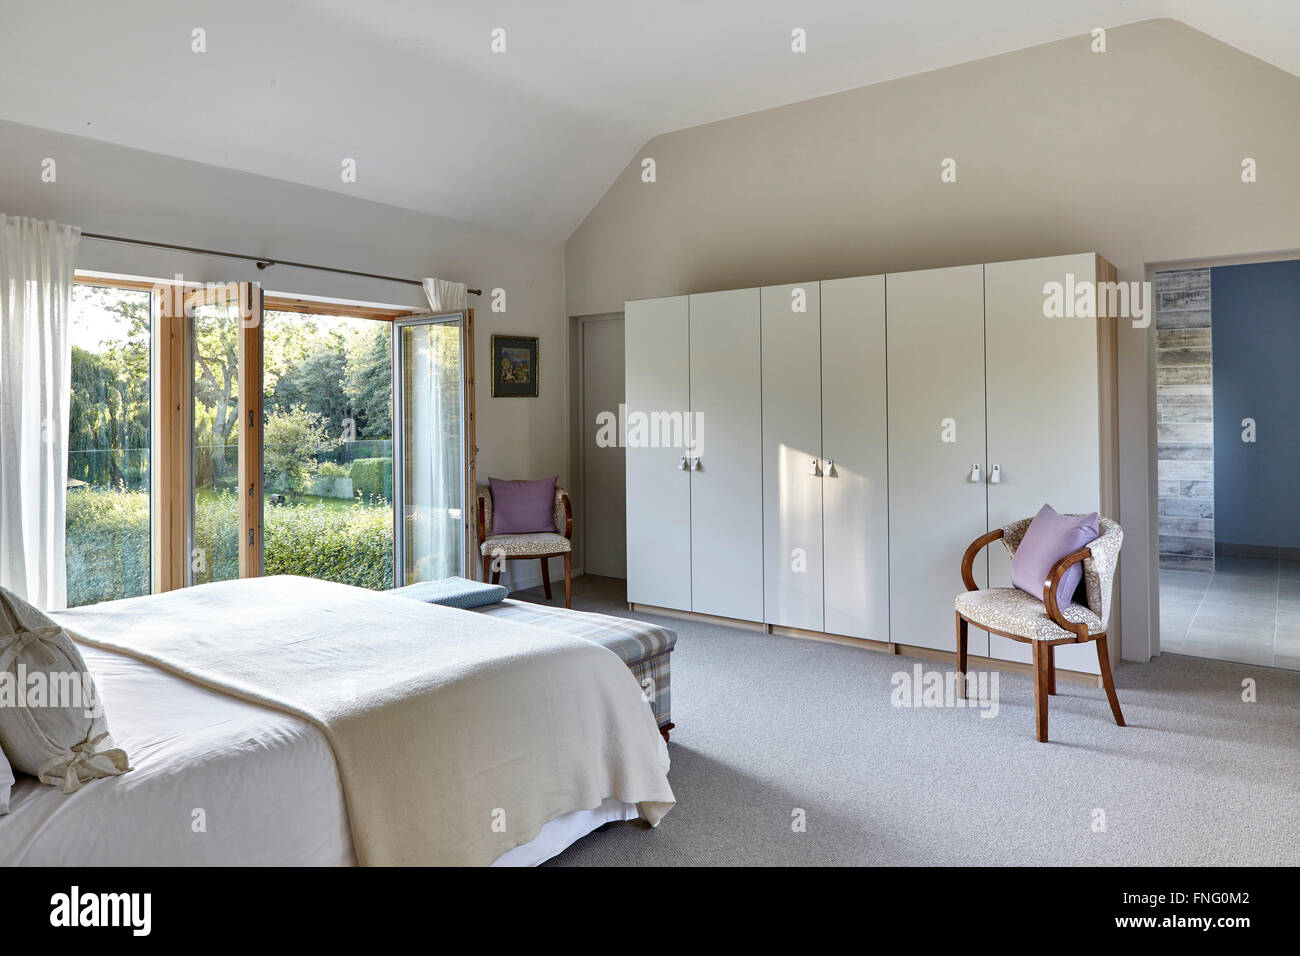 Master Bed Room With View To Bathroom And Double Glass